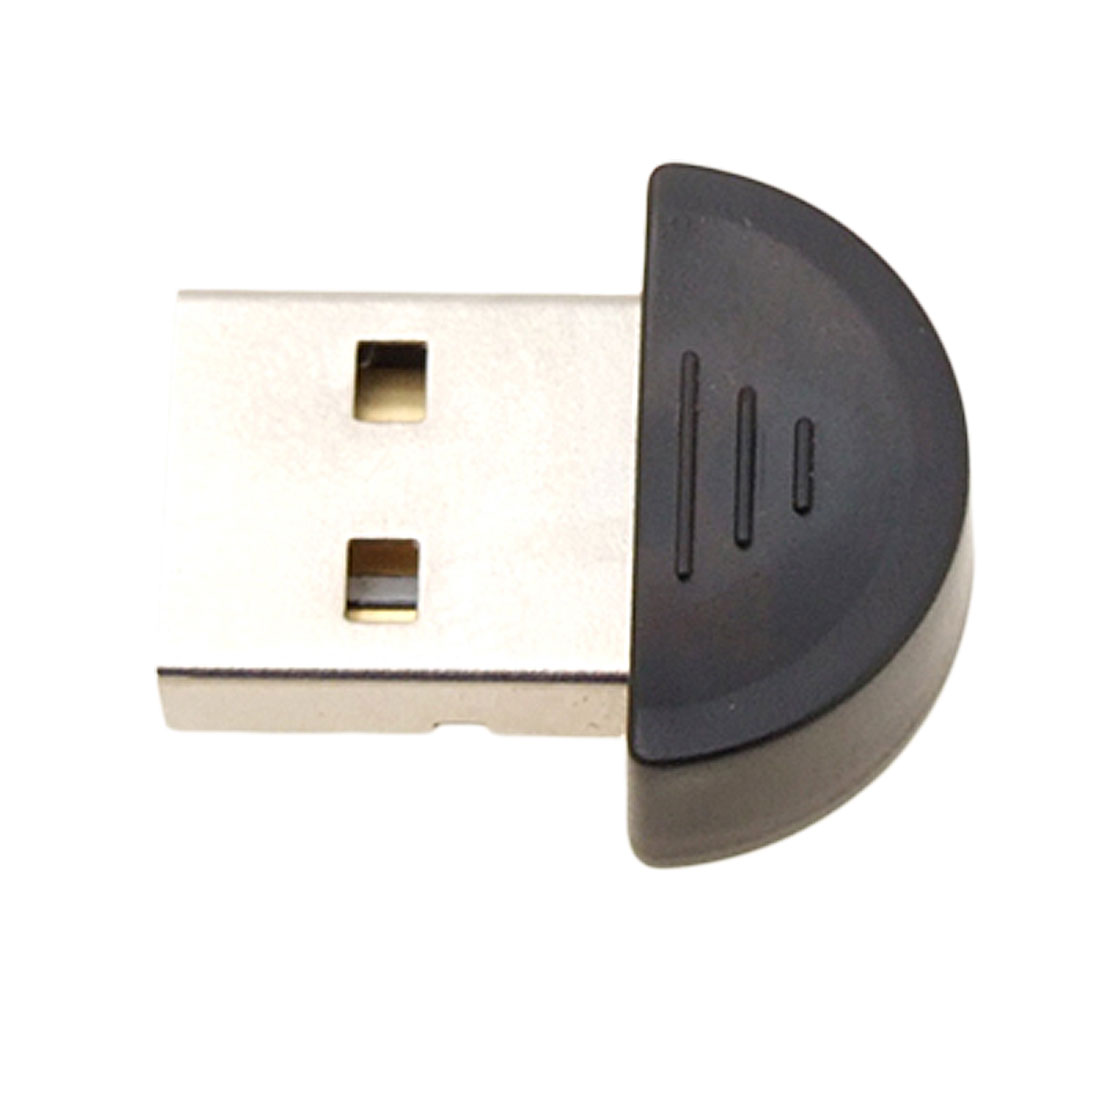 Mini Bluetooth USB Dongle Adapter for PC Compuer Laptop